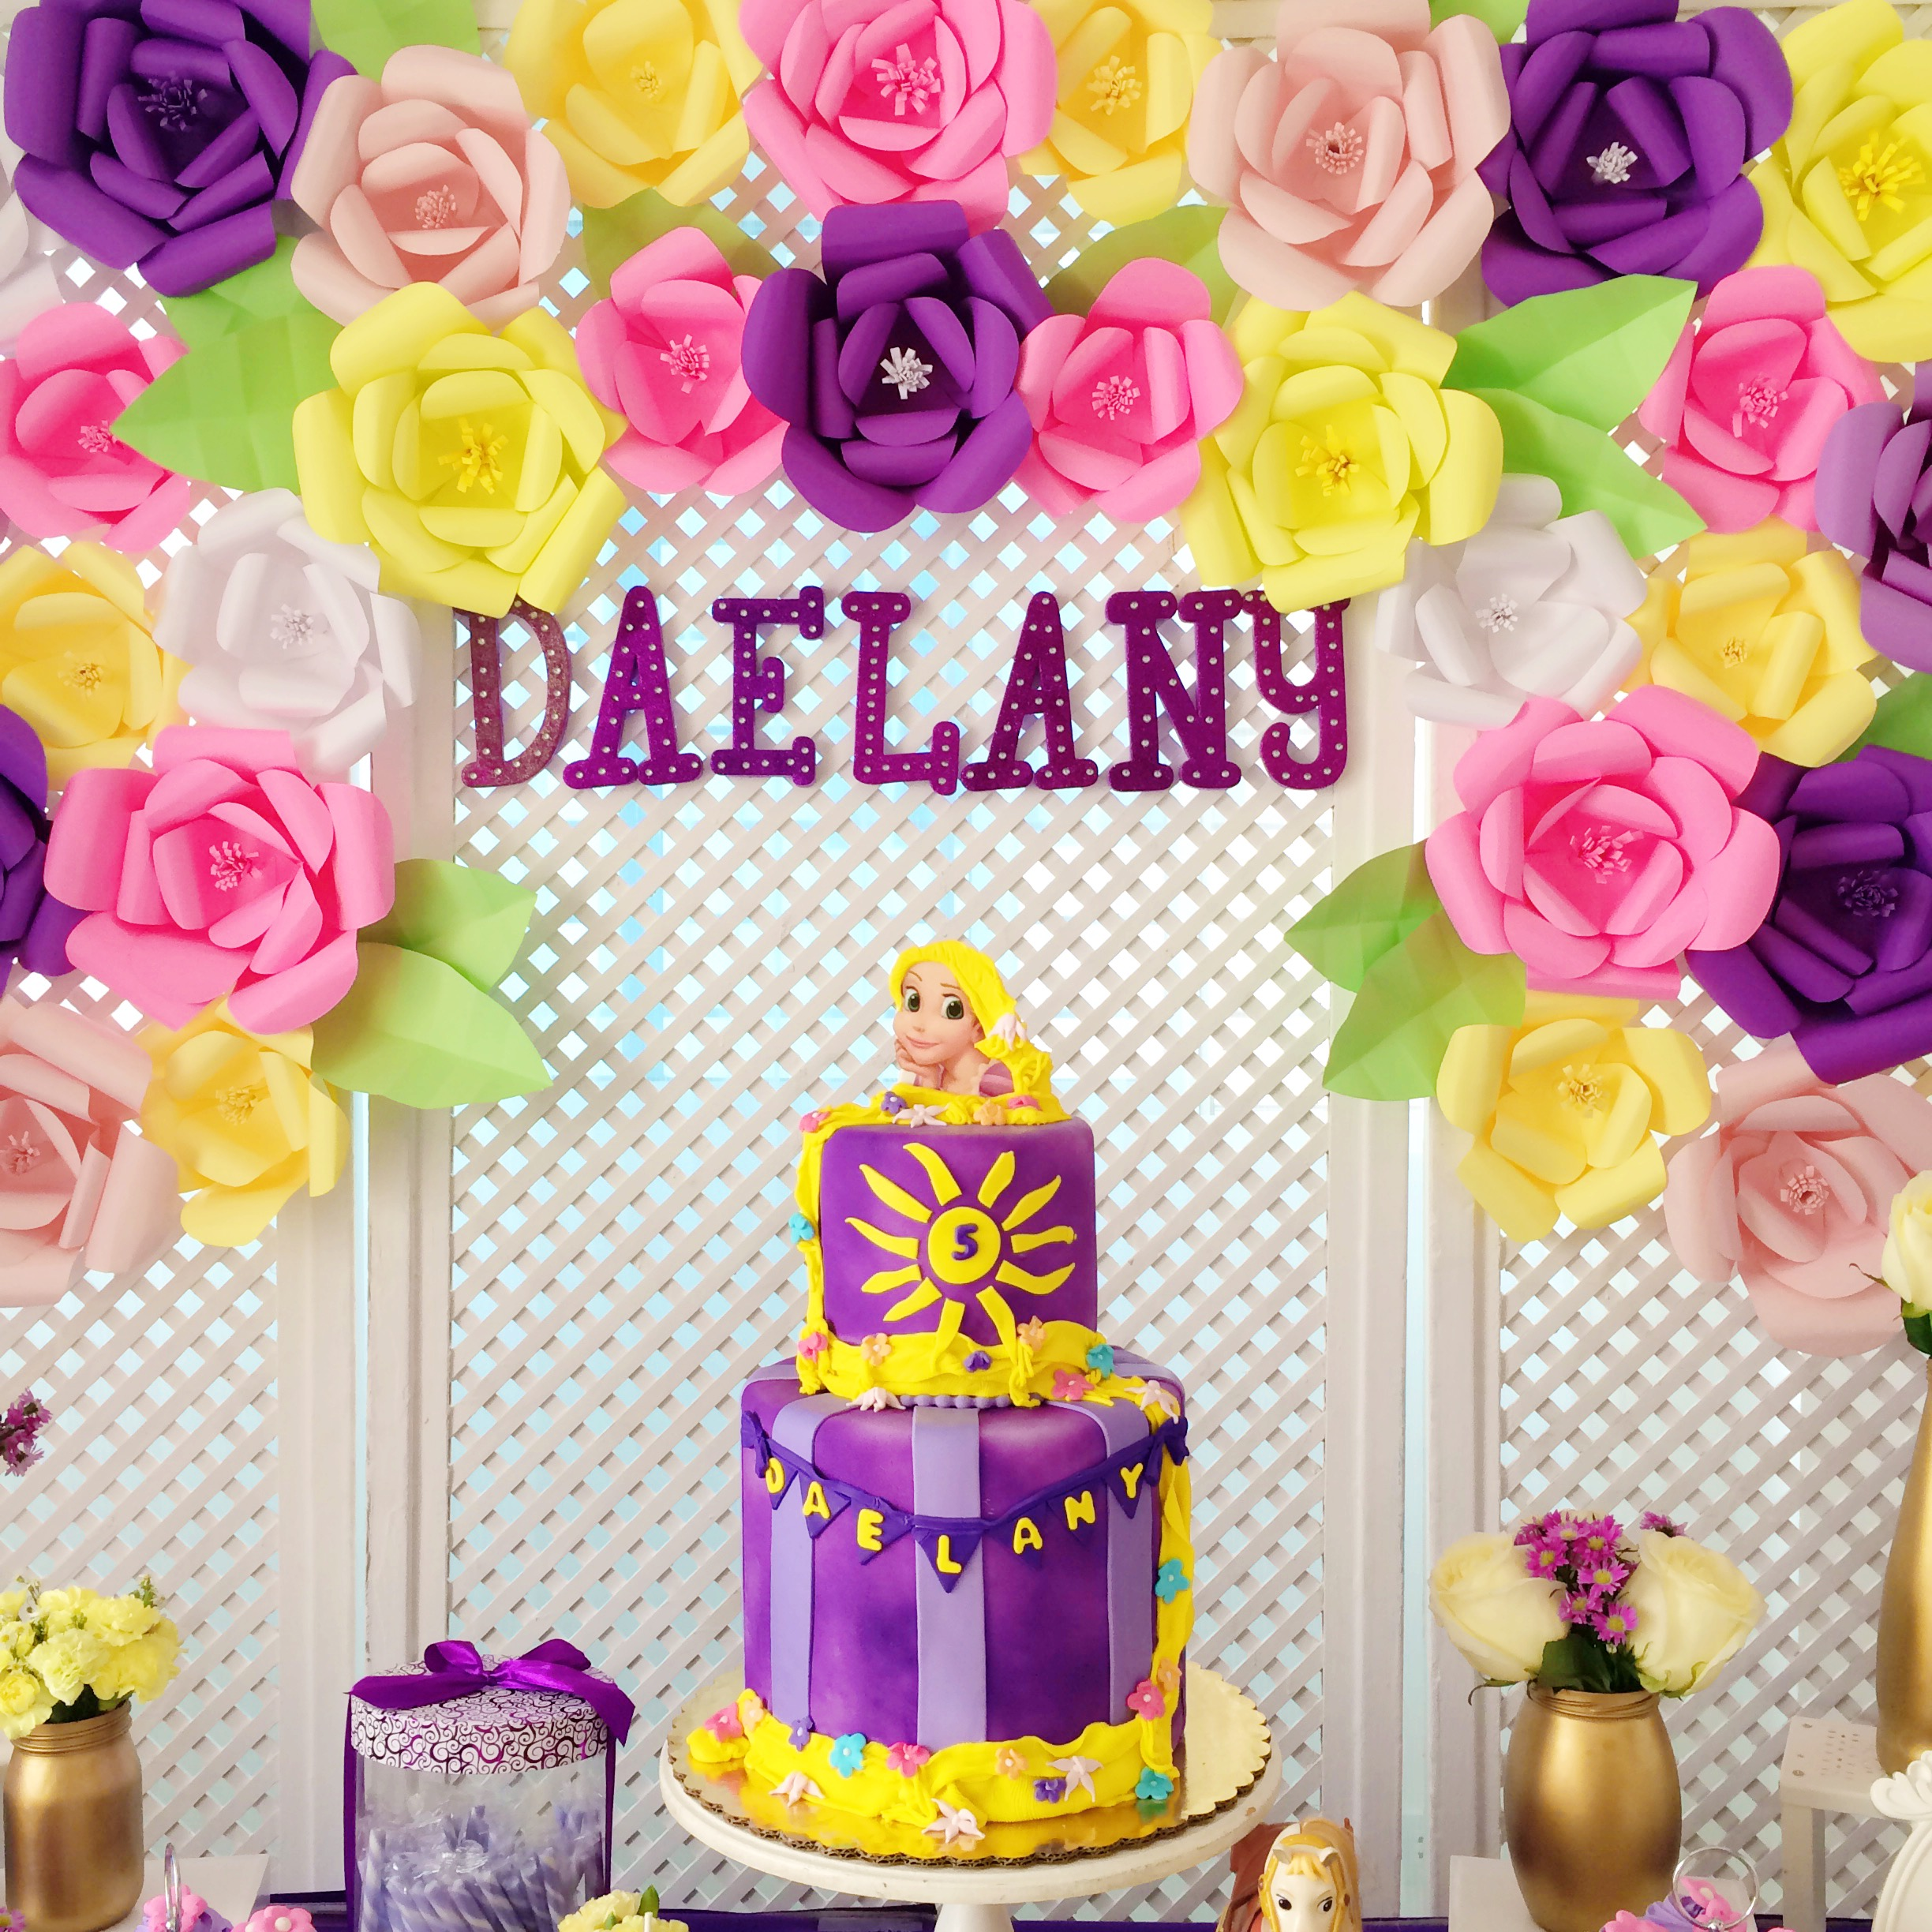 tangled-birthday-decoration-table-6